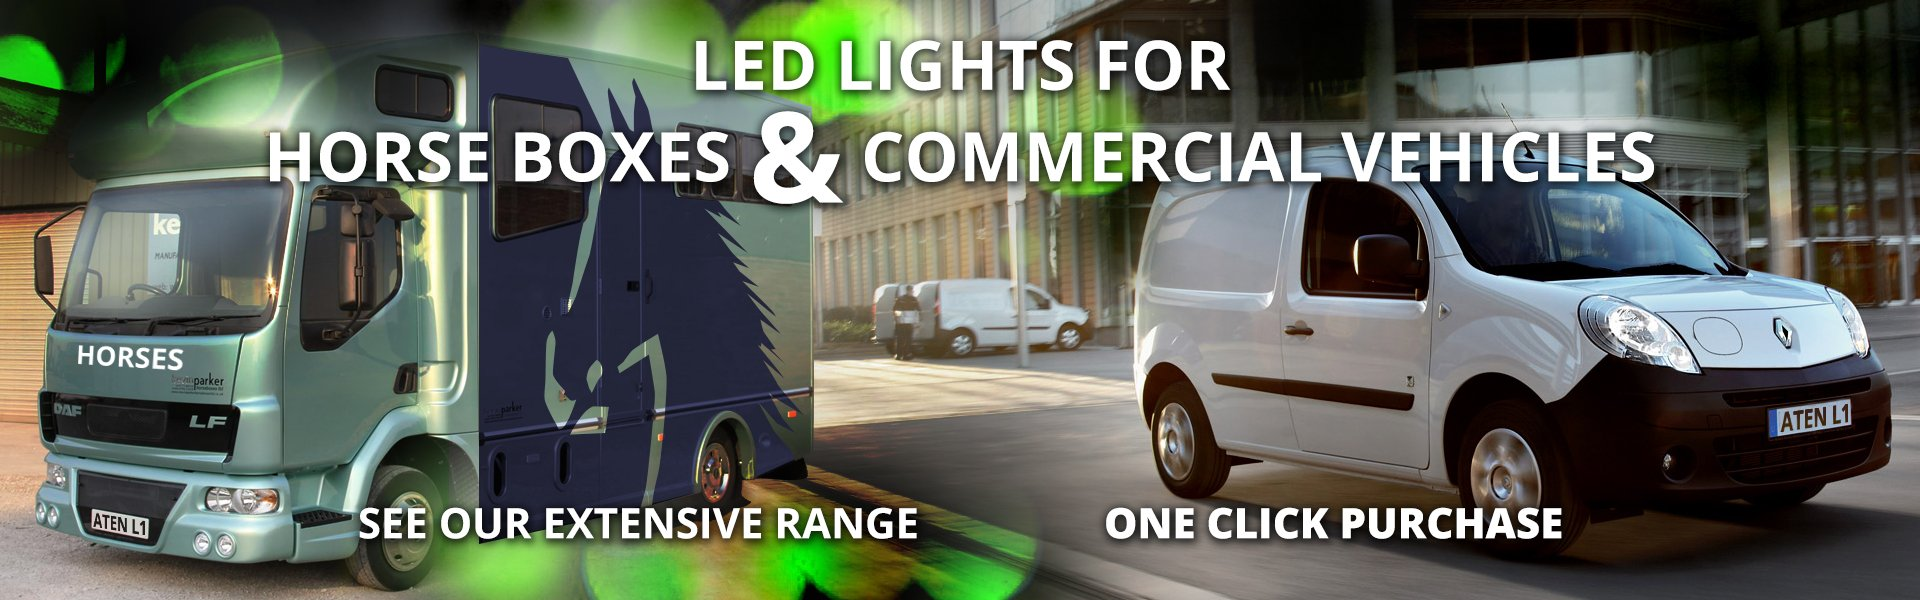 Eclairage Led 12 Volts Camping Car Supplier Of High Quality Led 12v Lighting For Boats Caravans And